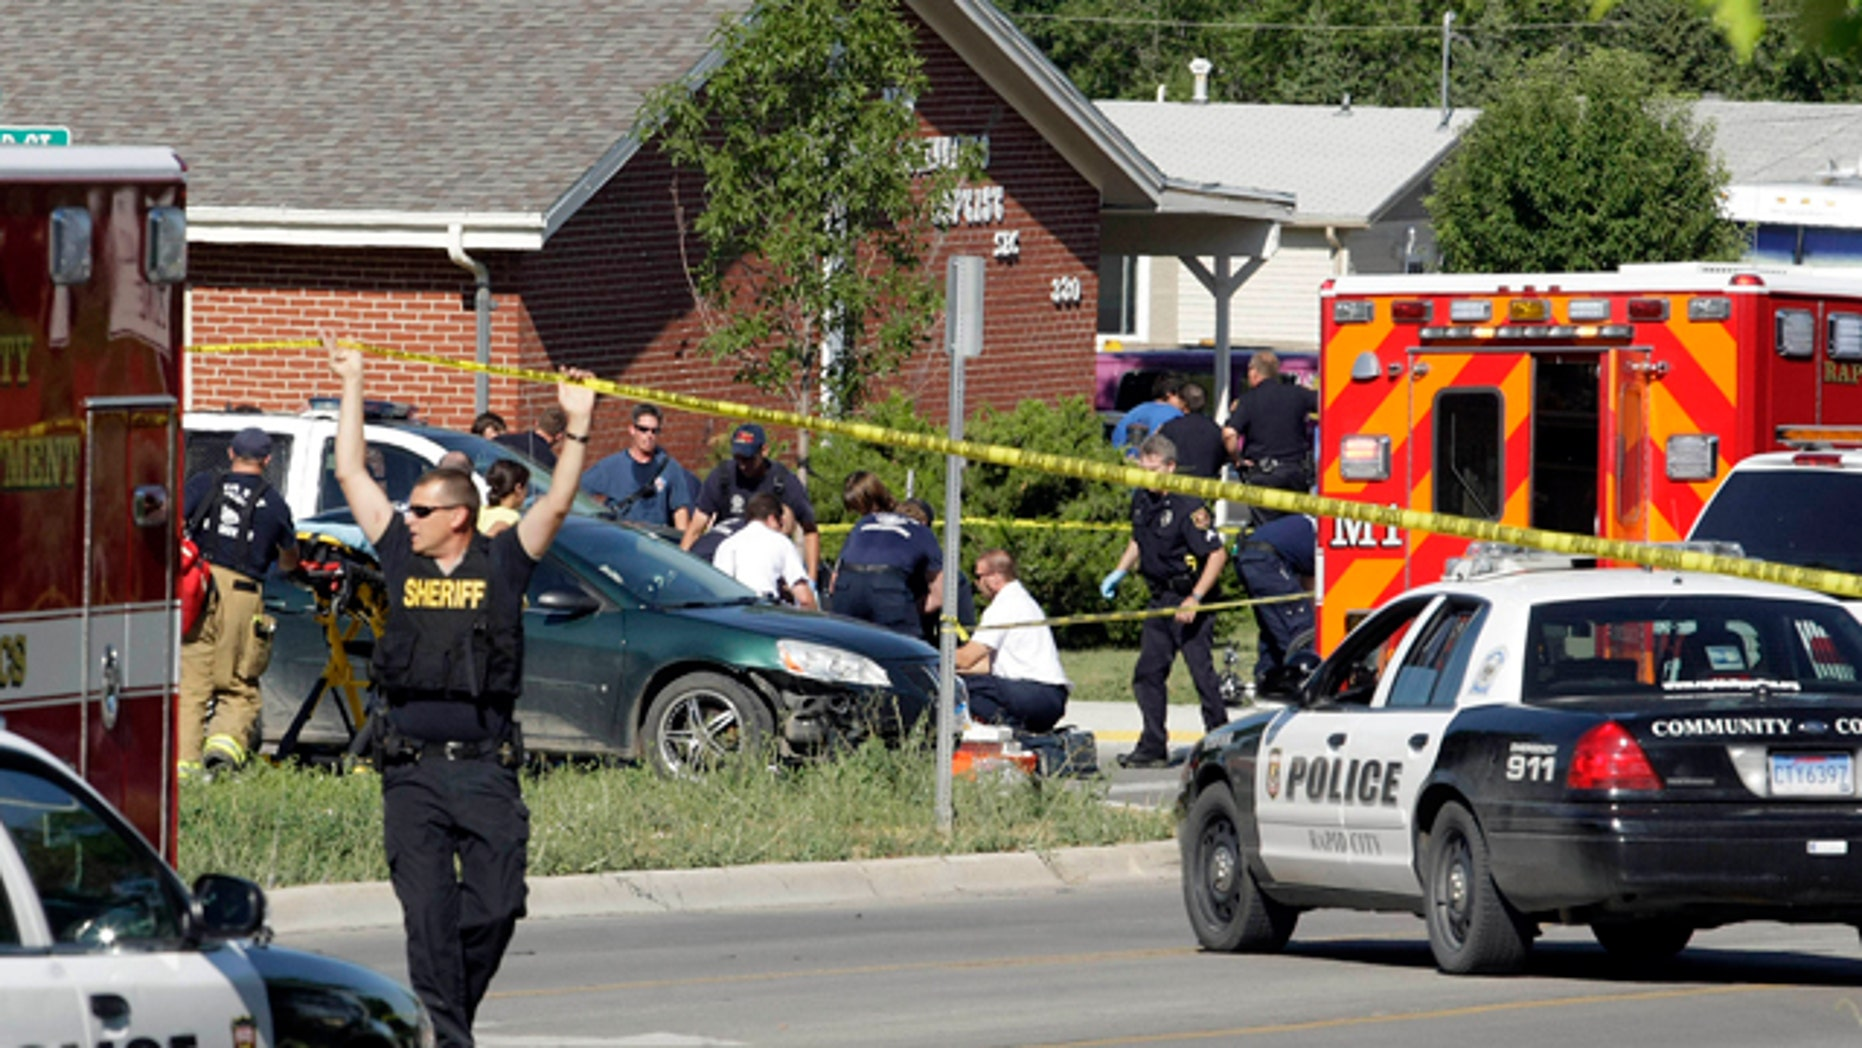 Aug. 2: Rapid City Firefighter/Paramedics and Rapid City Police Department personnel respond to shootings at the intersection of Anamosa and Greenbriar streets, in Rapid City, S.D. A Rapid City police officer was killed and two others were seriously wounded after a shootout with a man during a routine stop in the South Dakota city, authorities said late Tuesday. Gunfire erupted about 10 minutes after the three officers approached four people at an intersection.